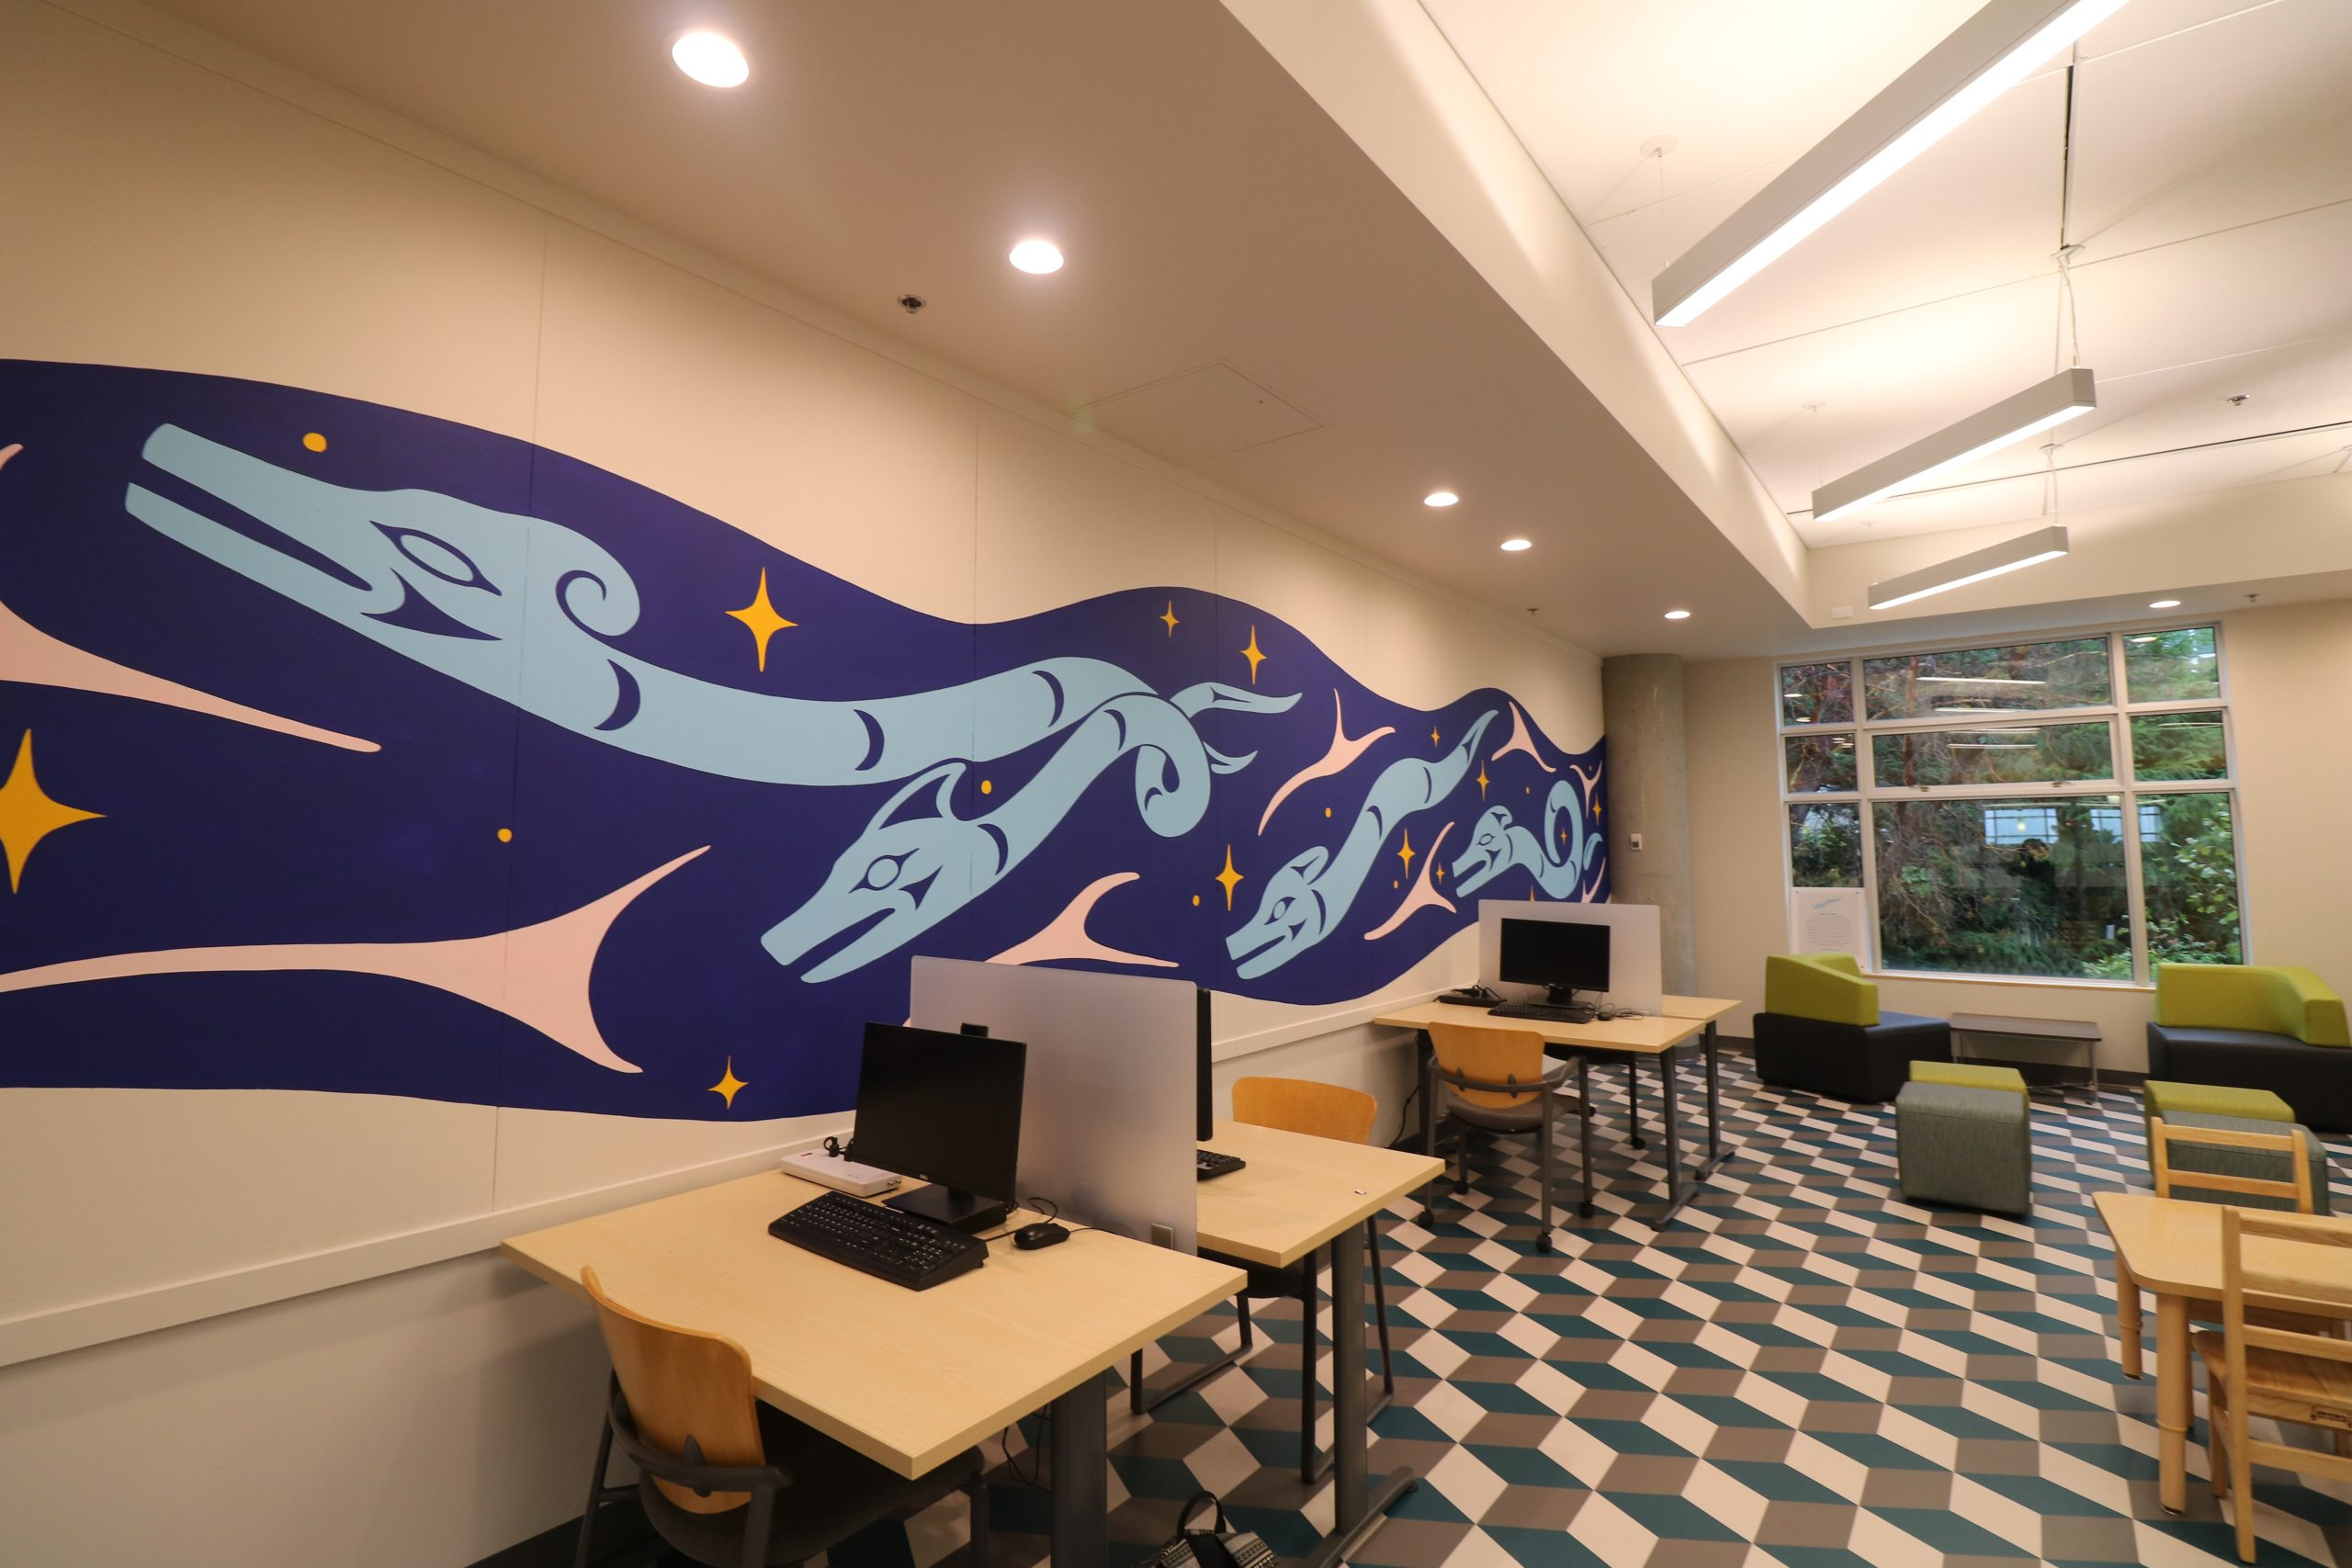 The image shows Eliot White-Hill's mural 'Lhuxw (To Flow)' that stretches across the whole wall of the family room